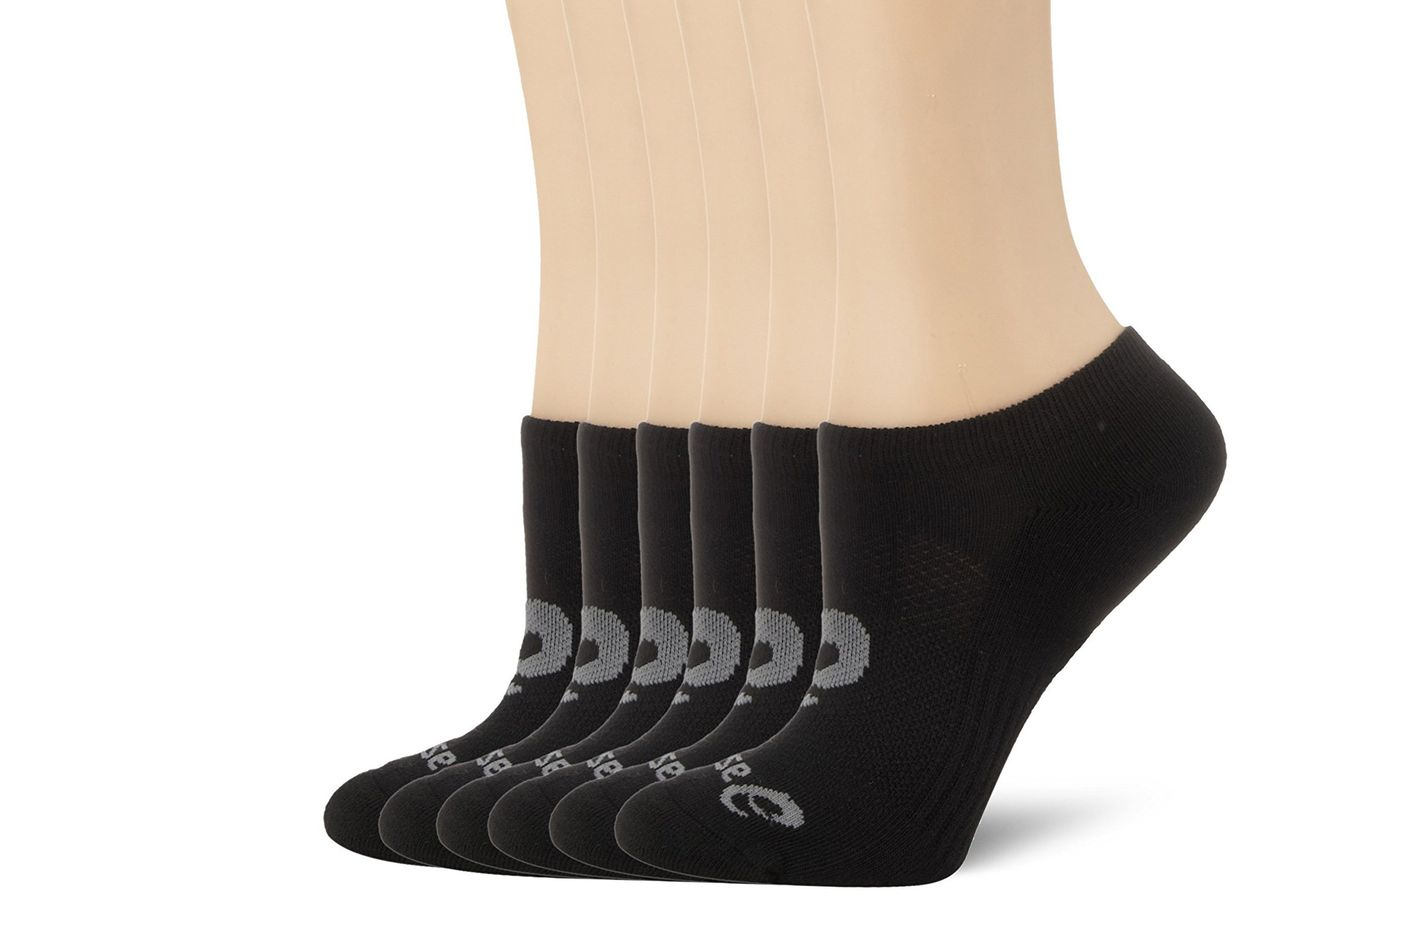 Asics no show socks (6-pack)